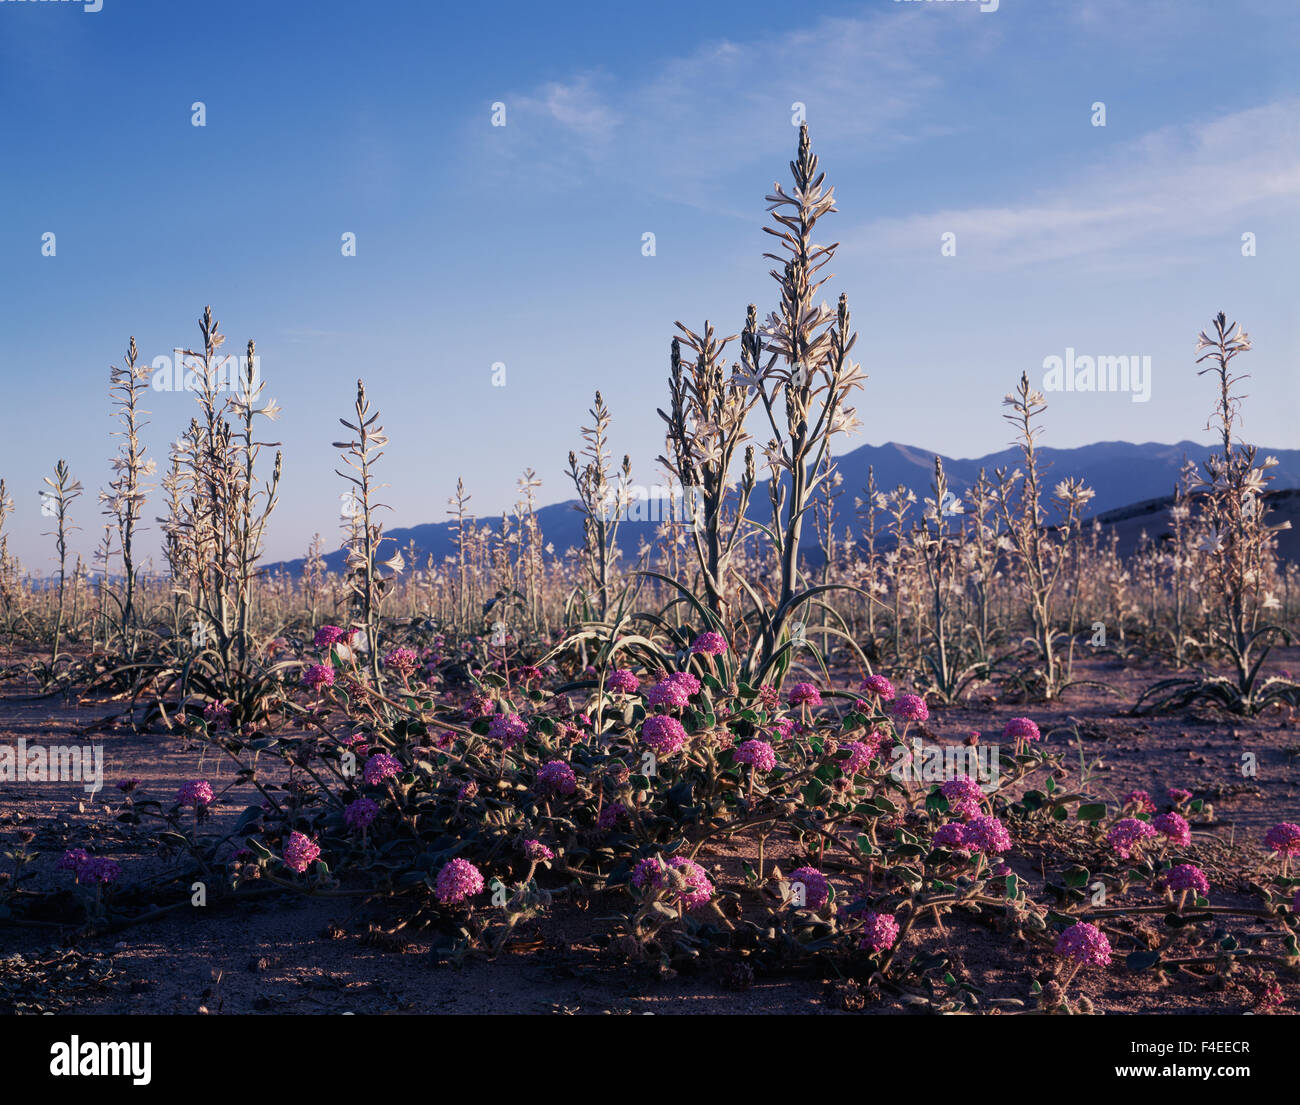 California, Sand Verbena Wildflowers (Abronia villosa) growing at the base of an extremely rare Desert Lily (Hesperocallis) - Stock Image